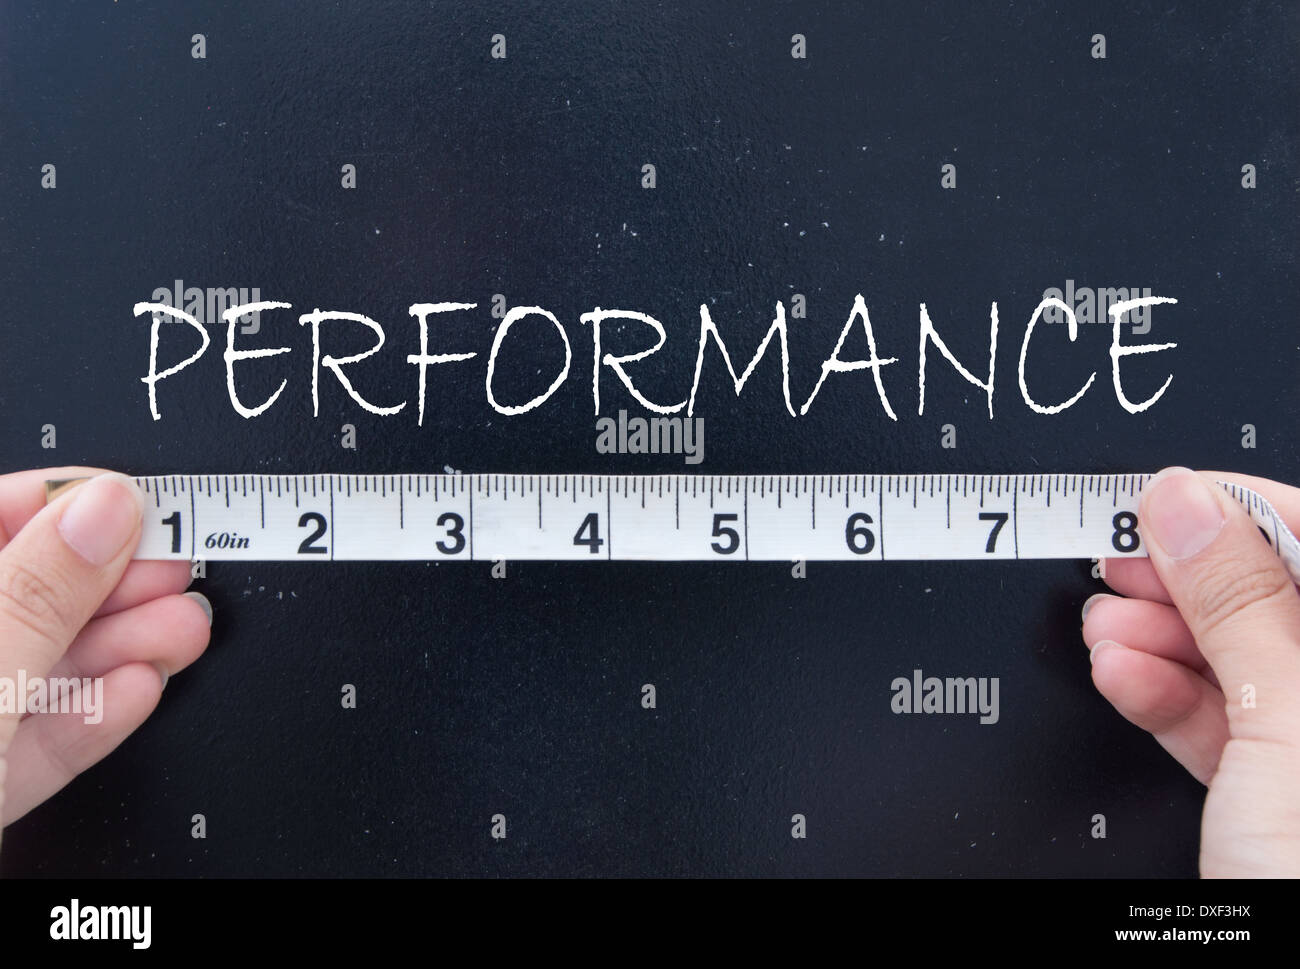 Measuring performance - Stock Image